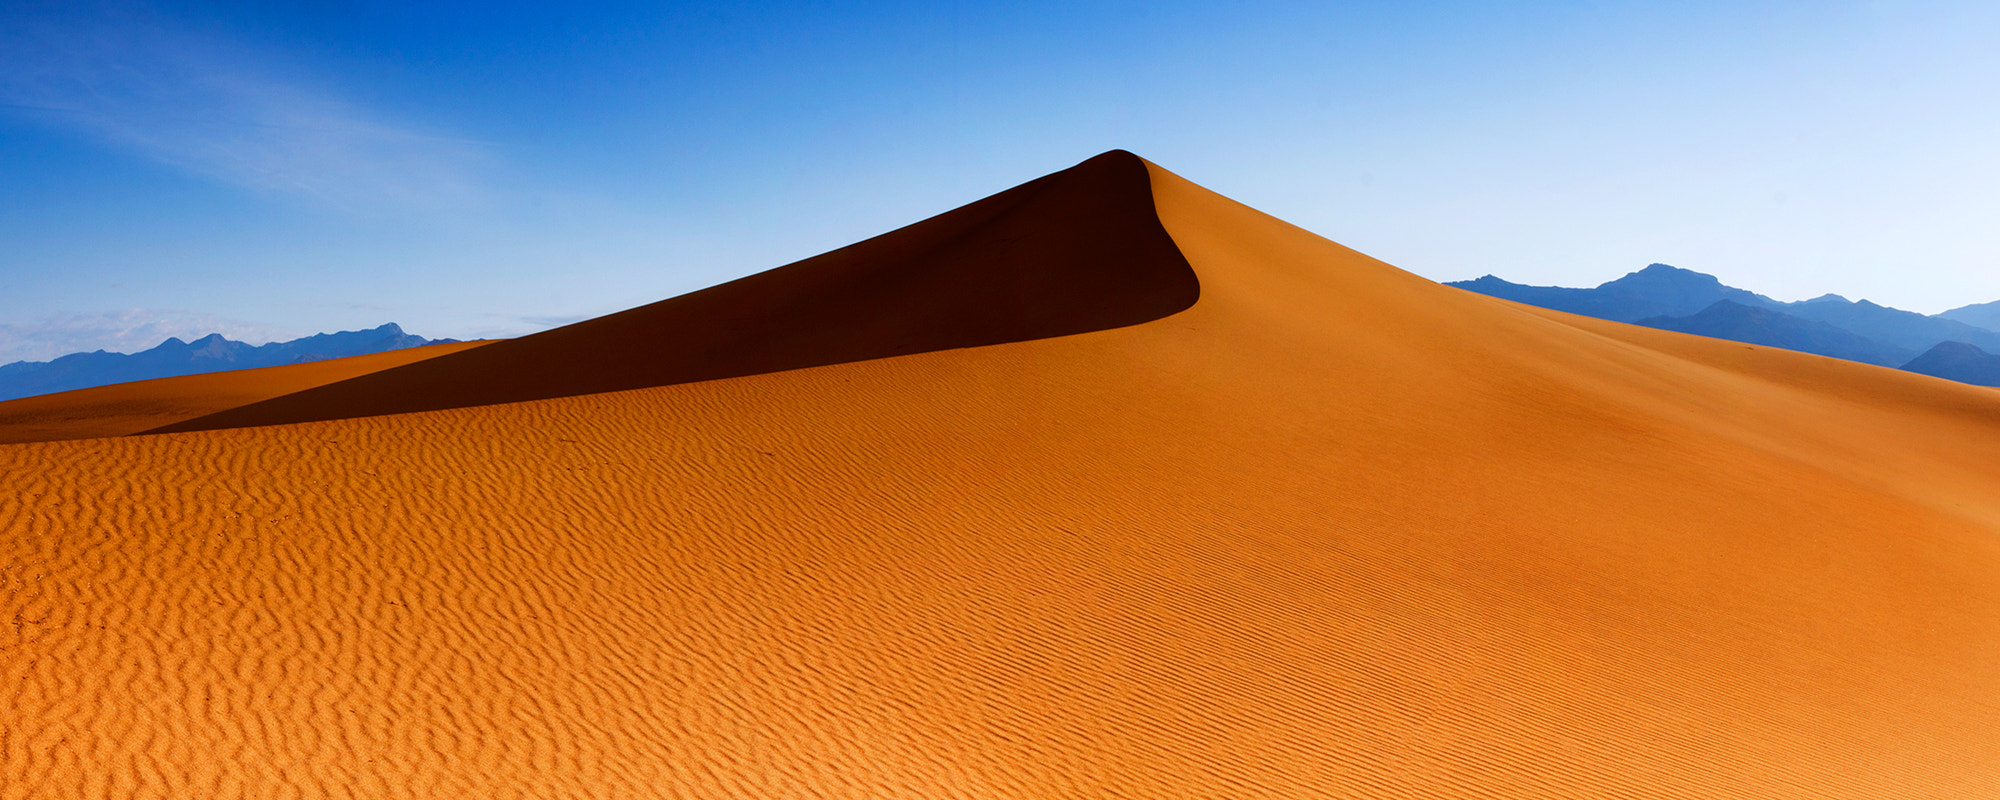 Photograph Mesquite Sand Dunes  by Wade Odlum on 500px